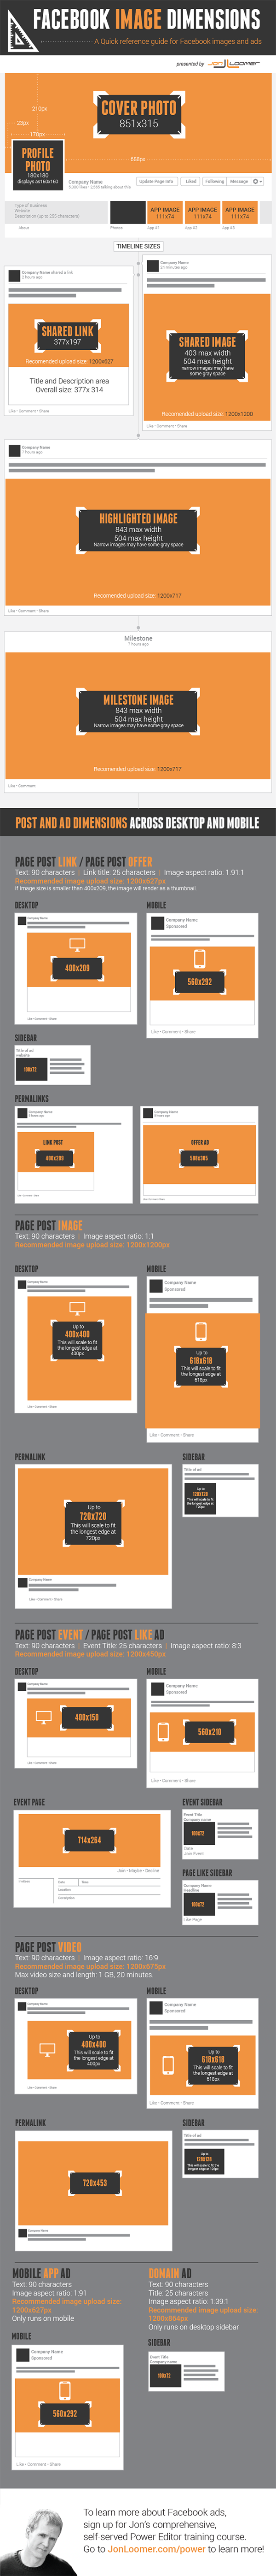 Create the Perfect Facebook Page With This Image Dimension Cheat Sheet